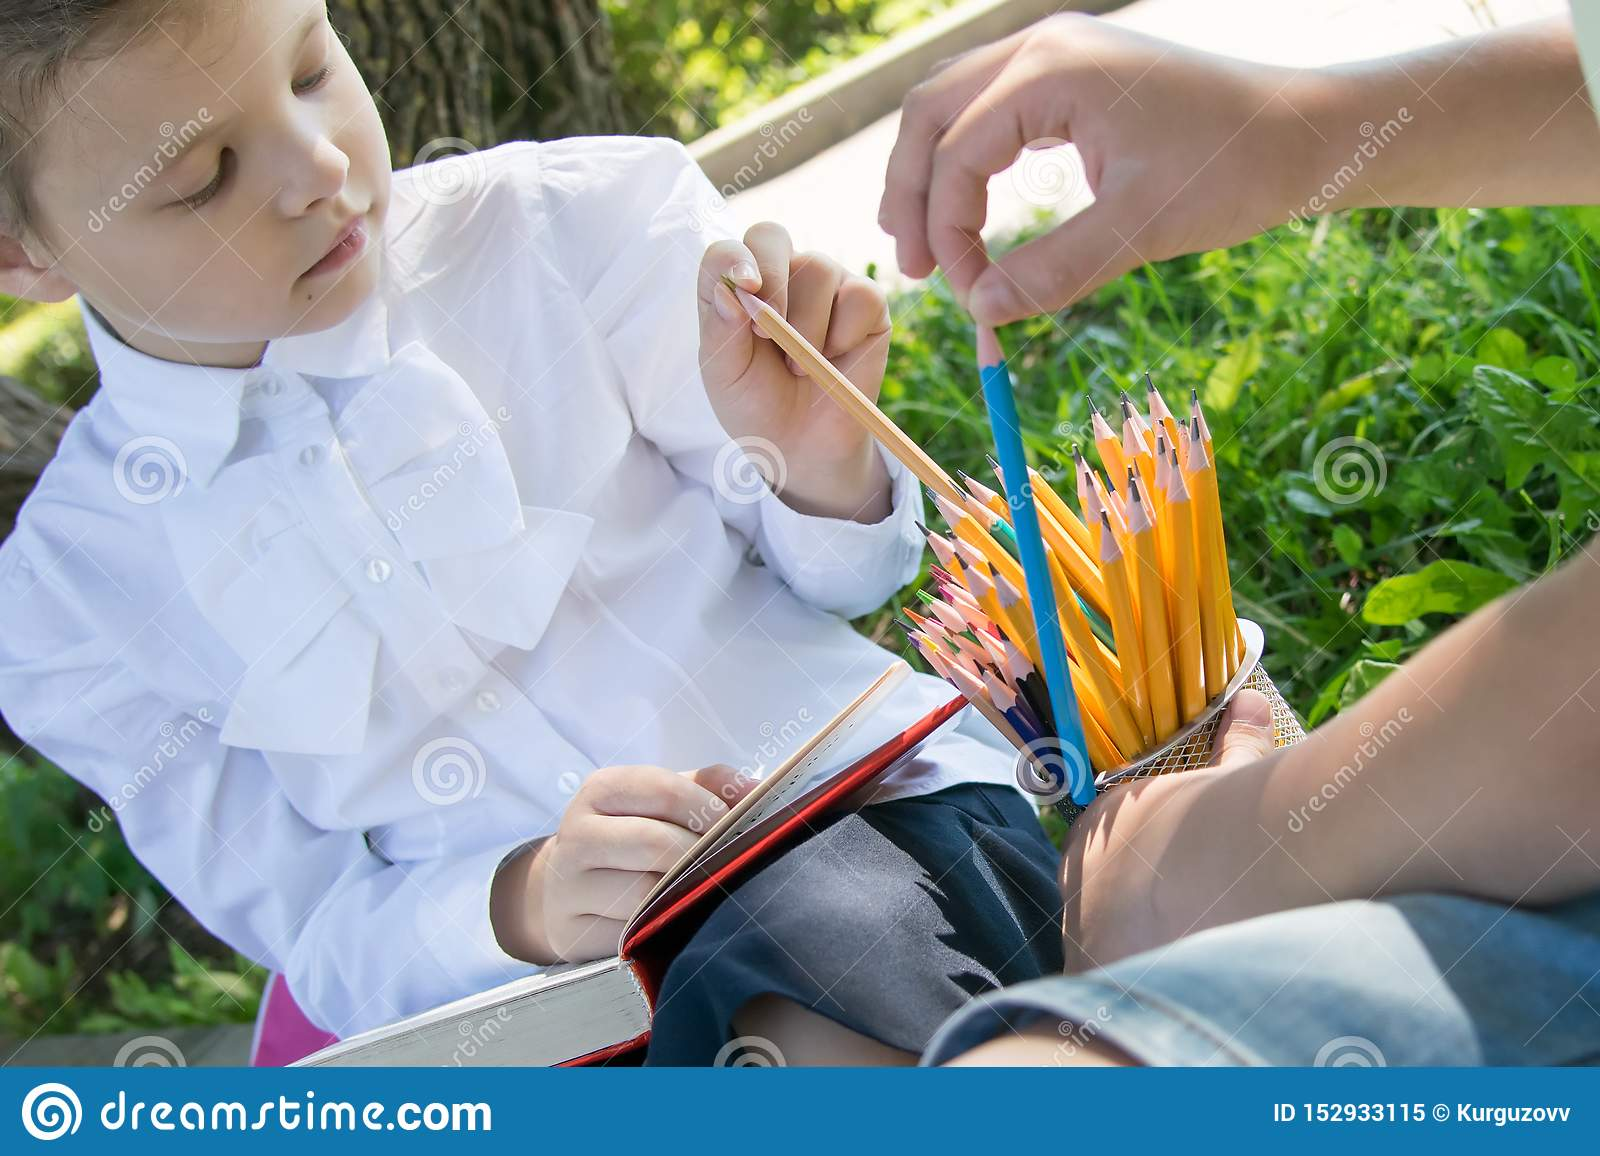 Close-up, in the park, in the fresh air, from a large number of pencils, the students choose a sharpened